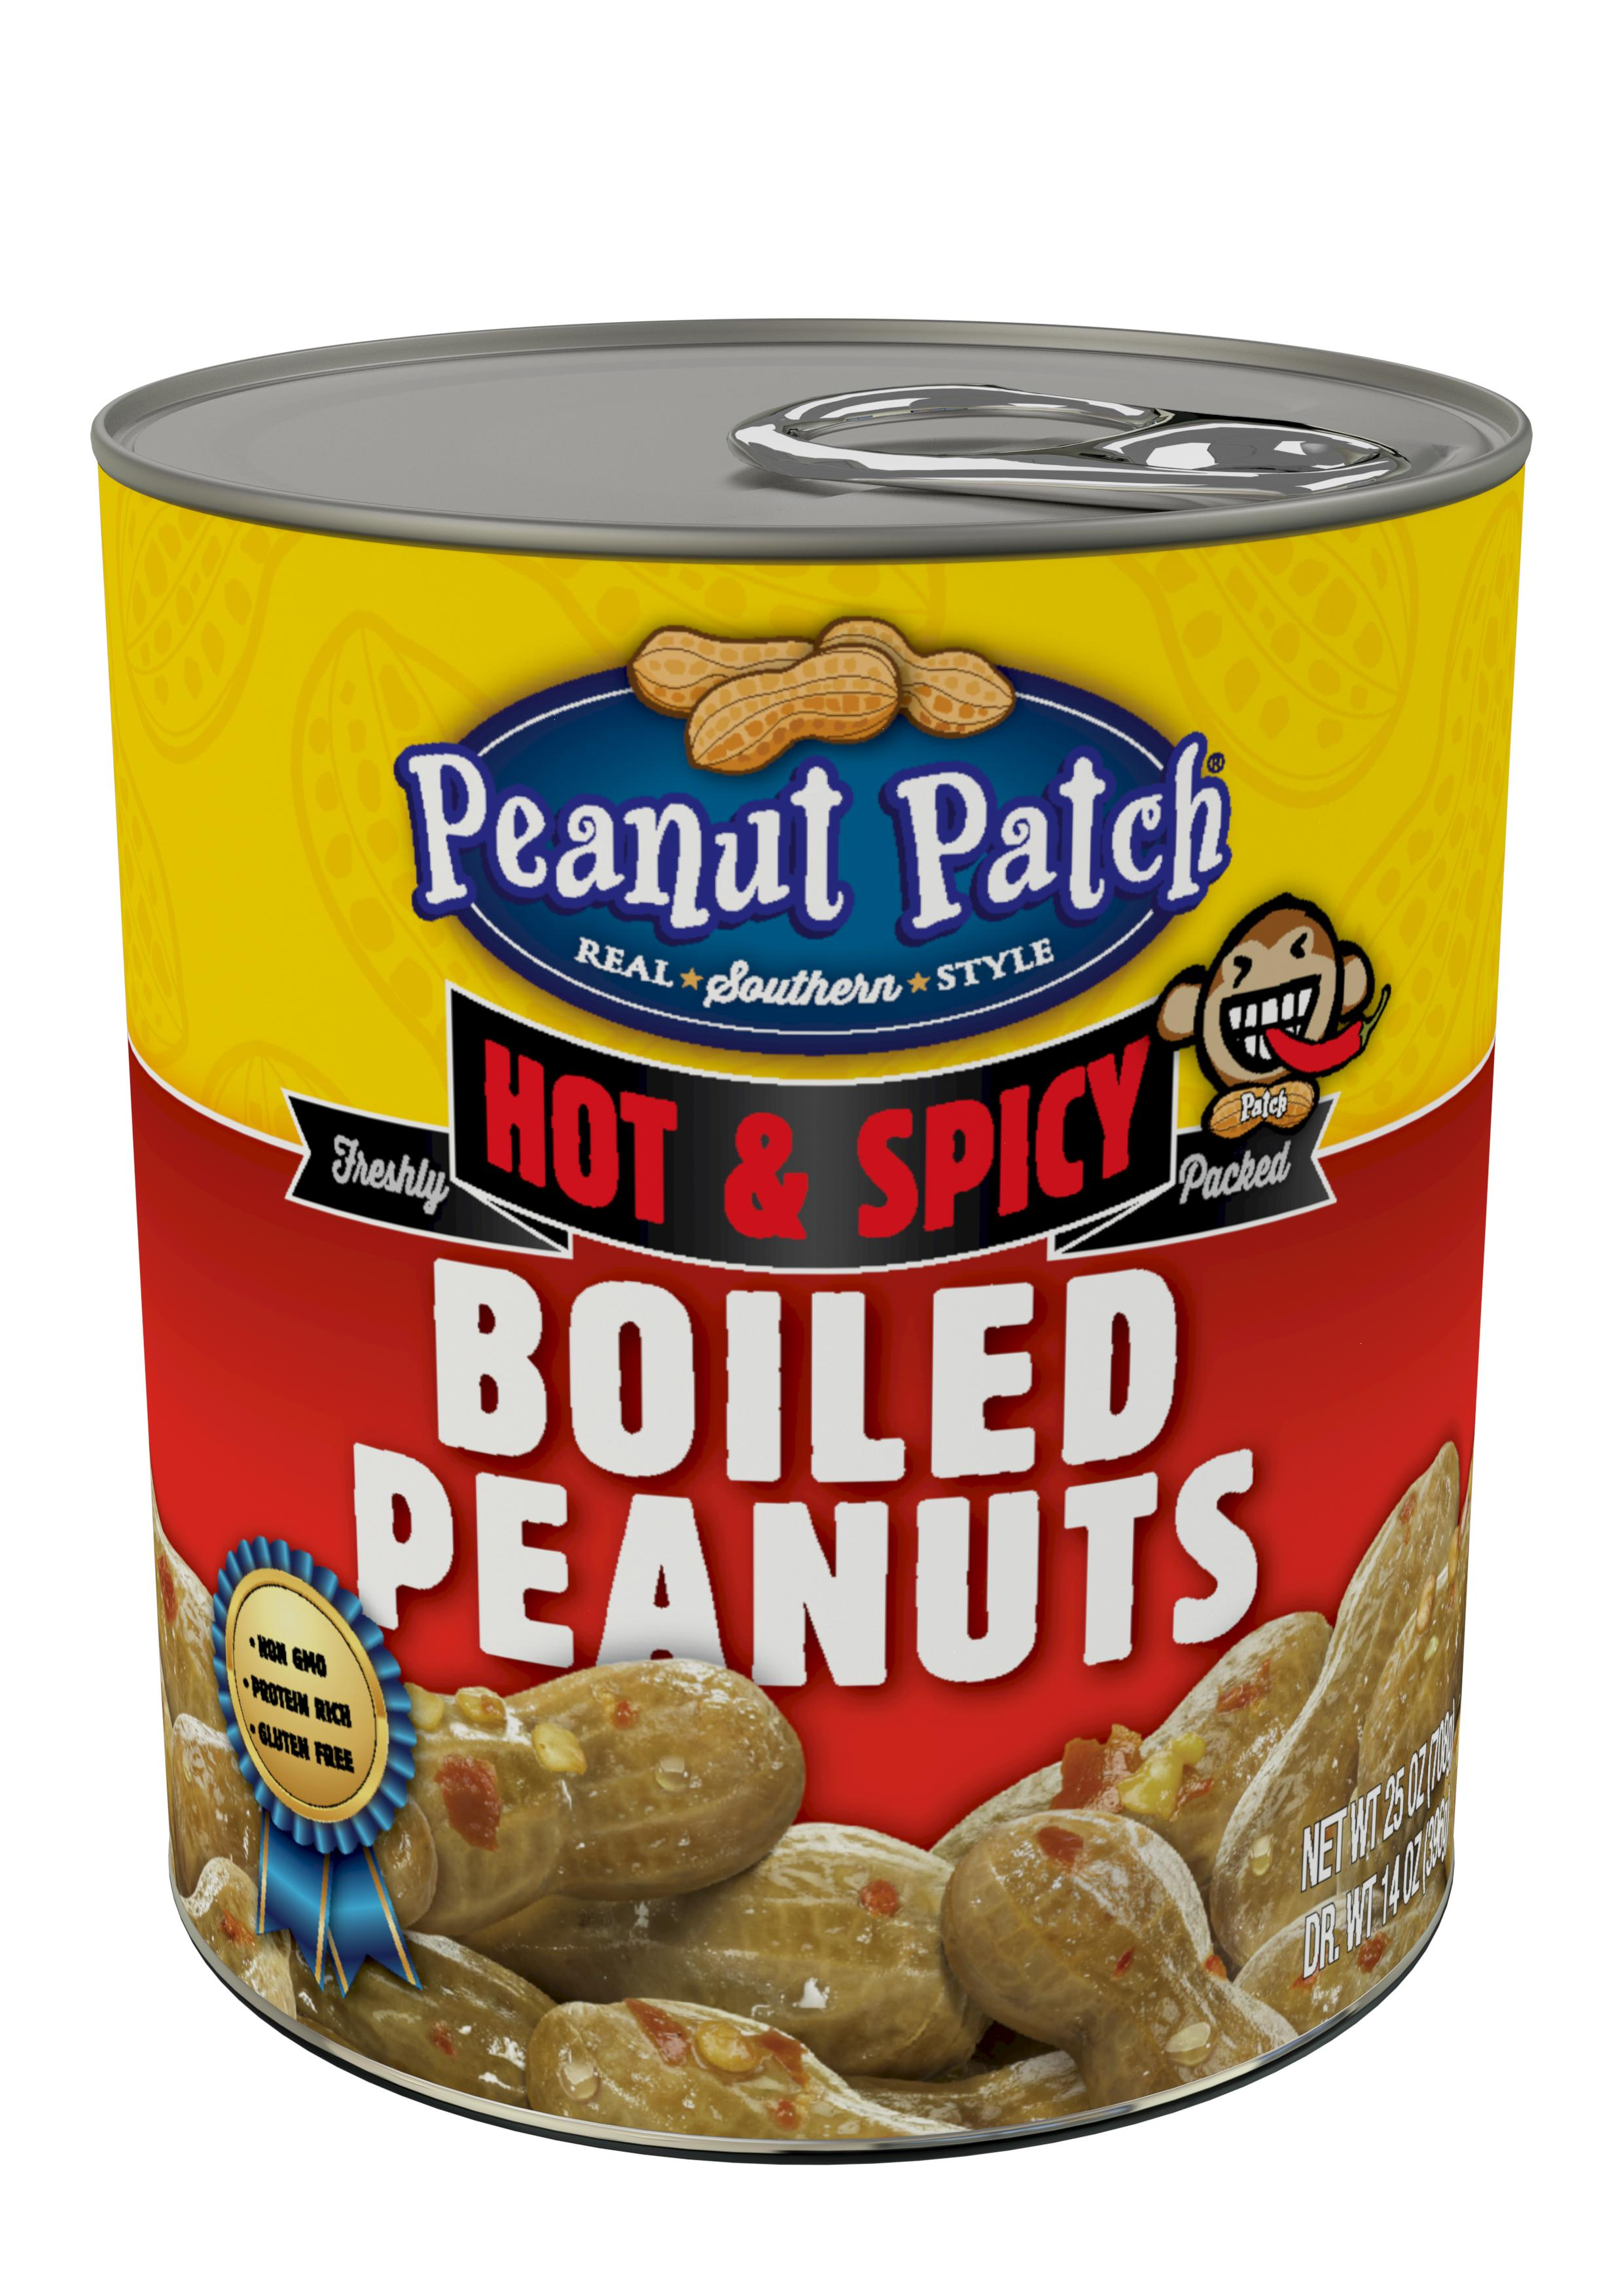 Hot & Spicy Green Boiled Peanuts